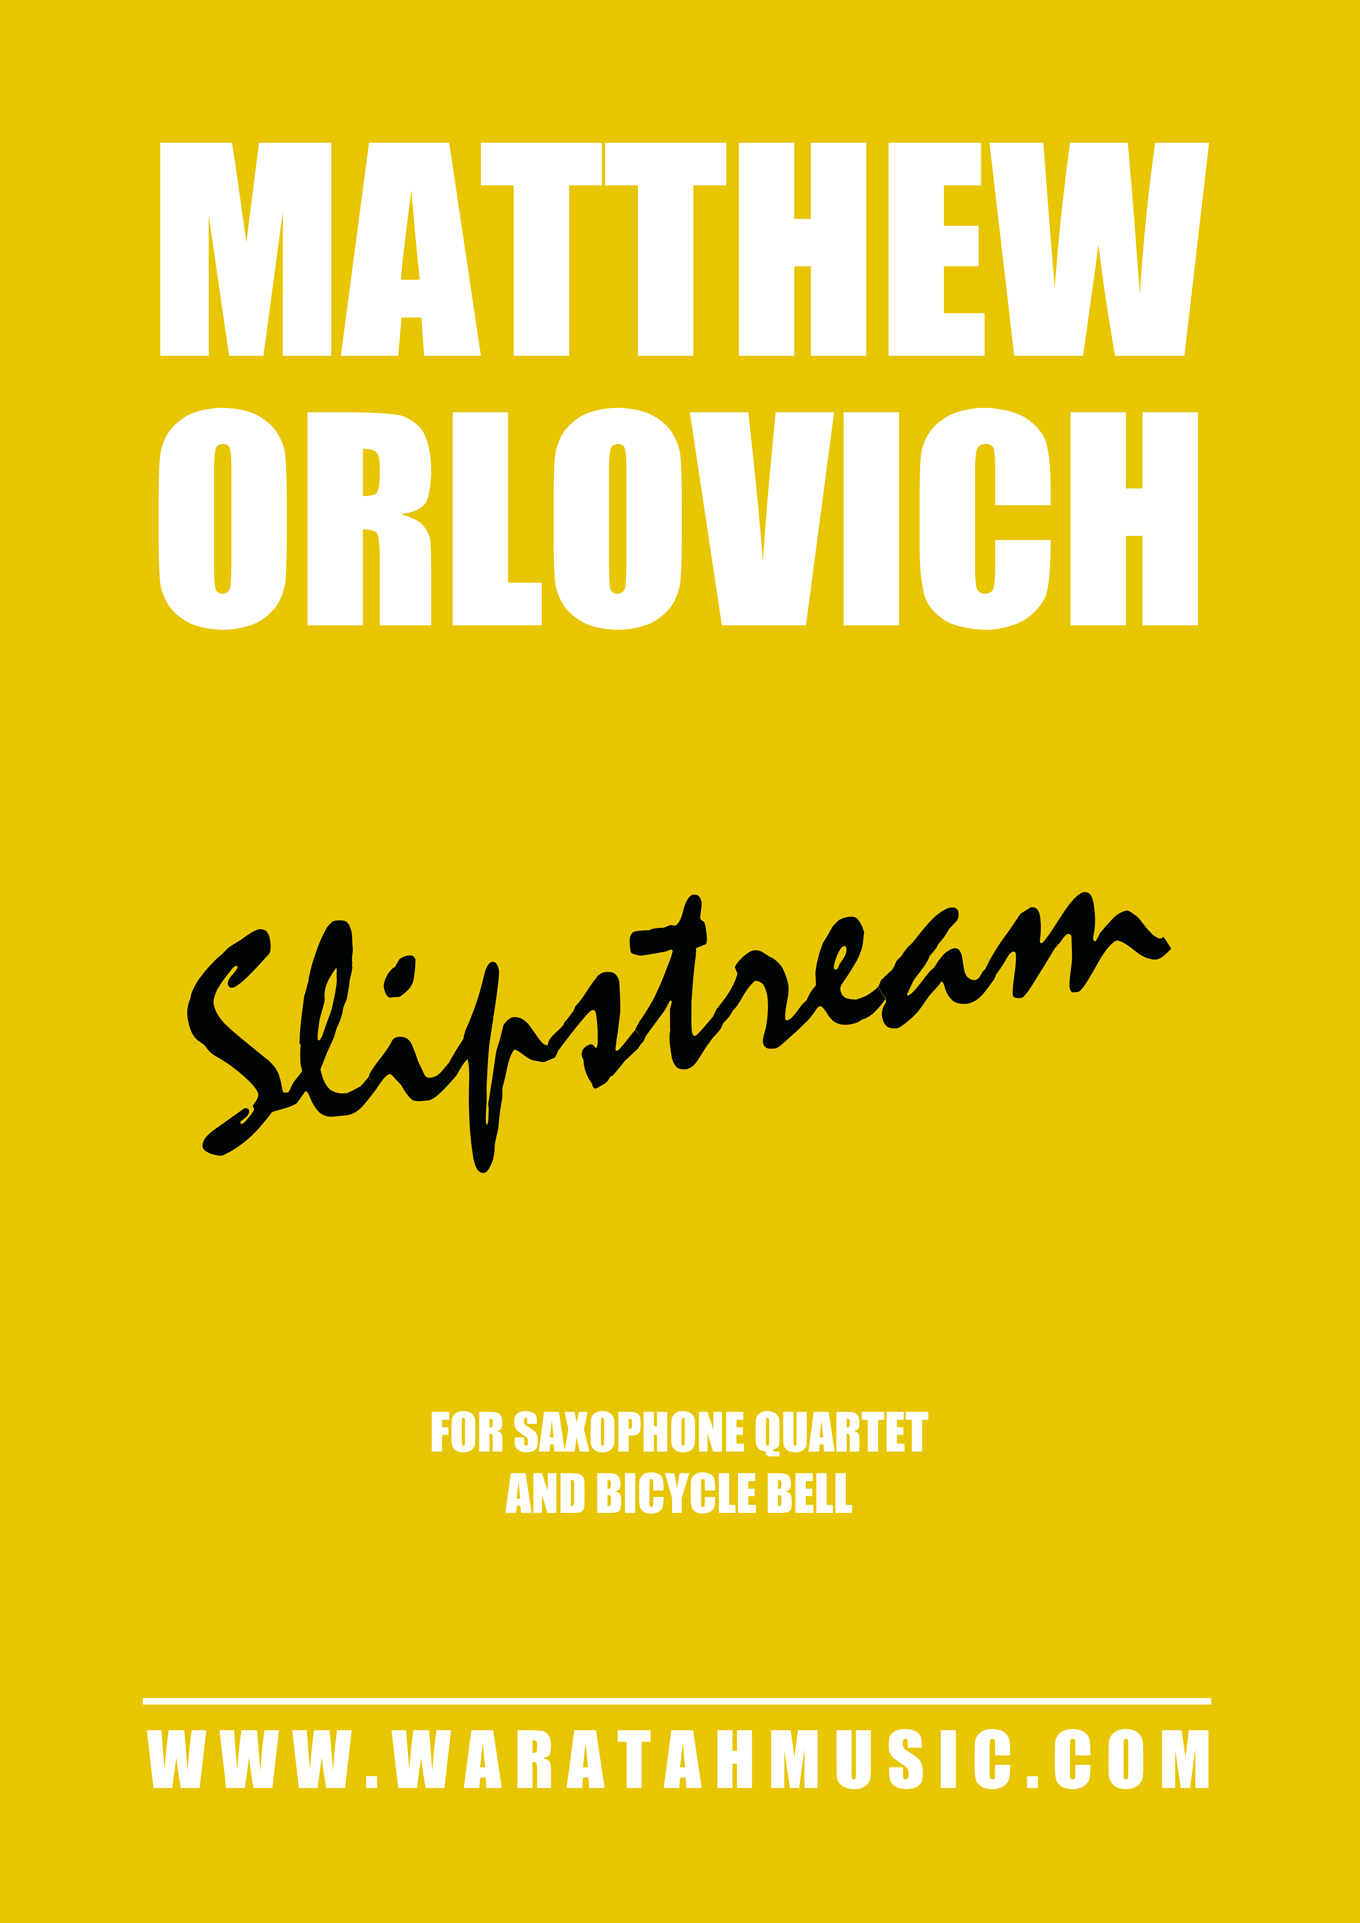 Slipstream (for saxophone quartet & bicycle bell) – By Matthew Orlovich.